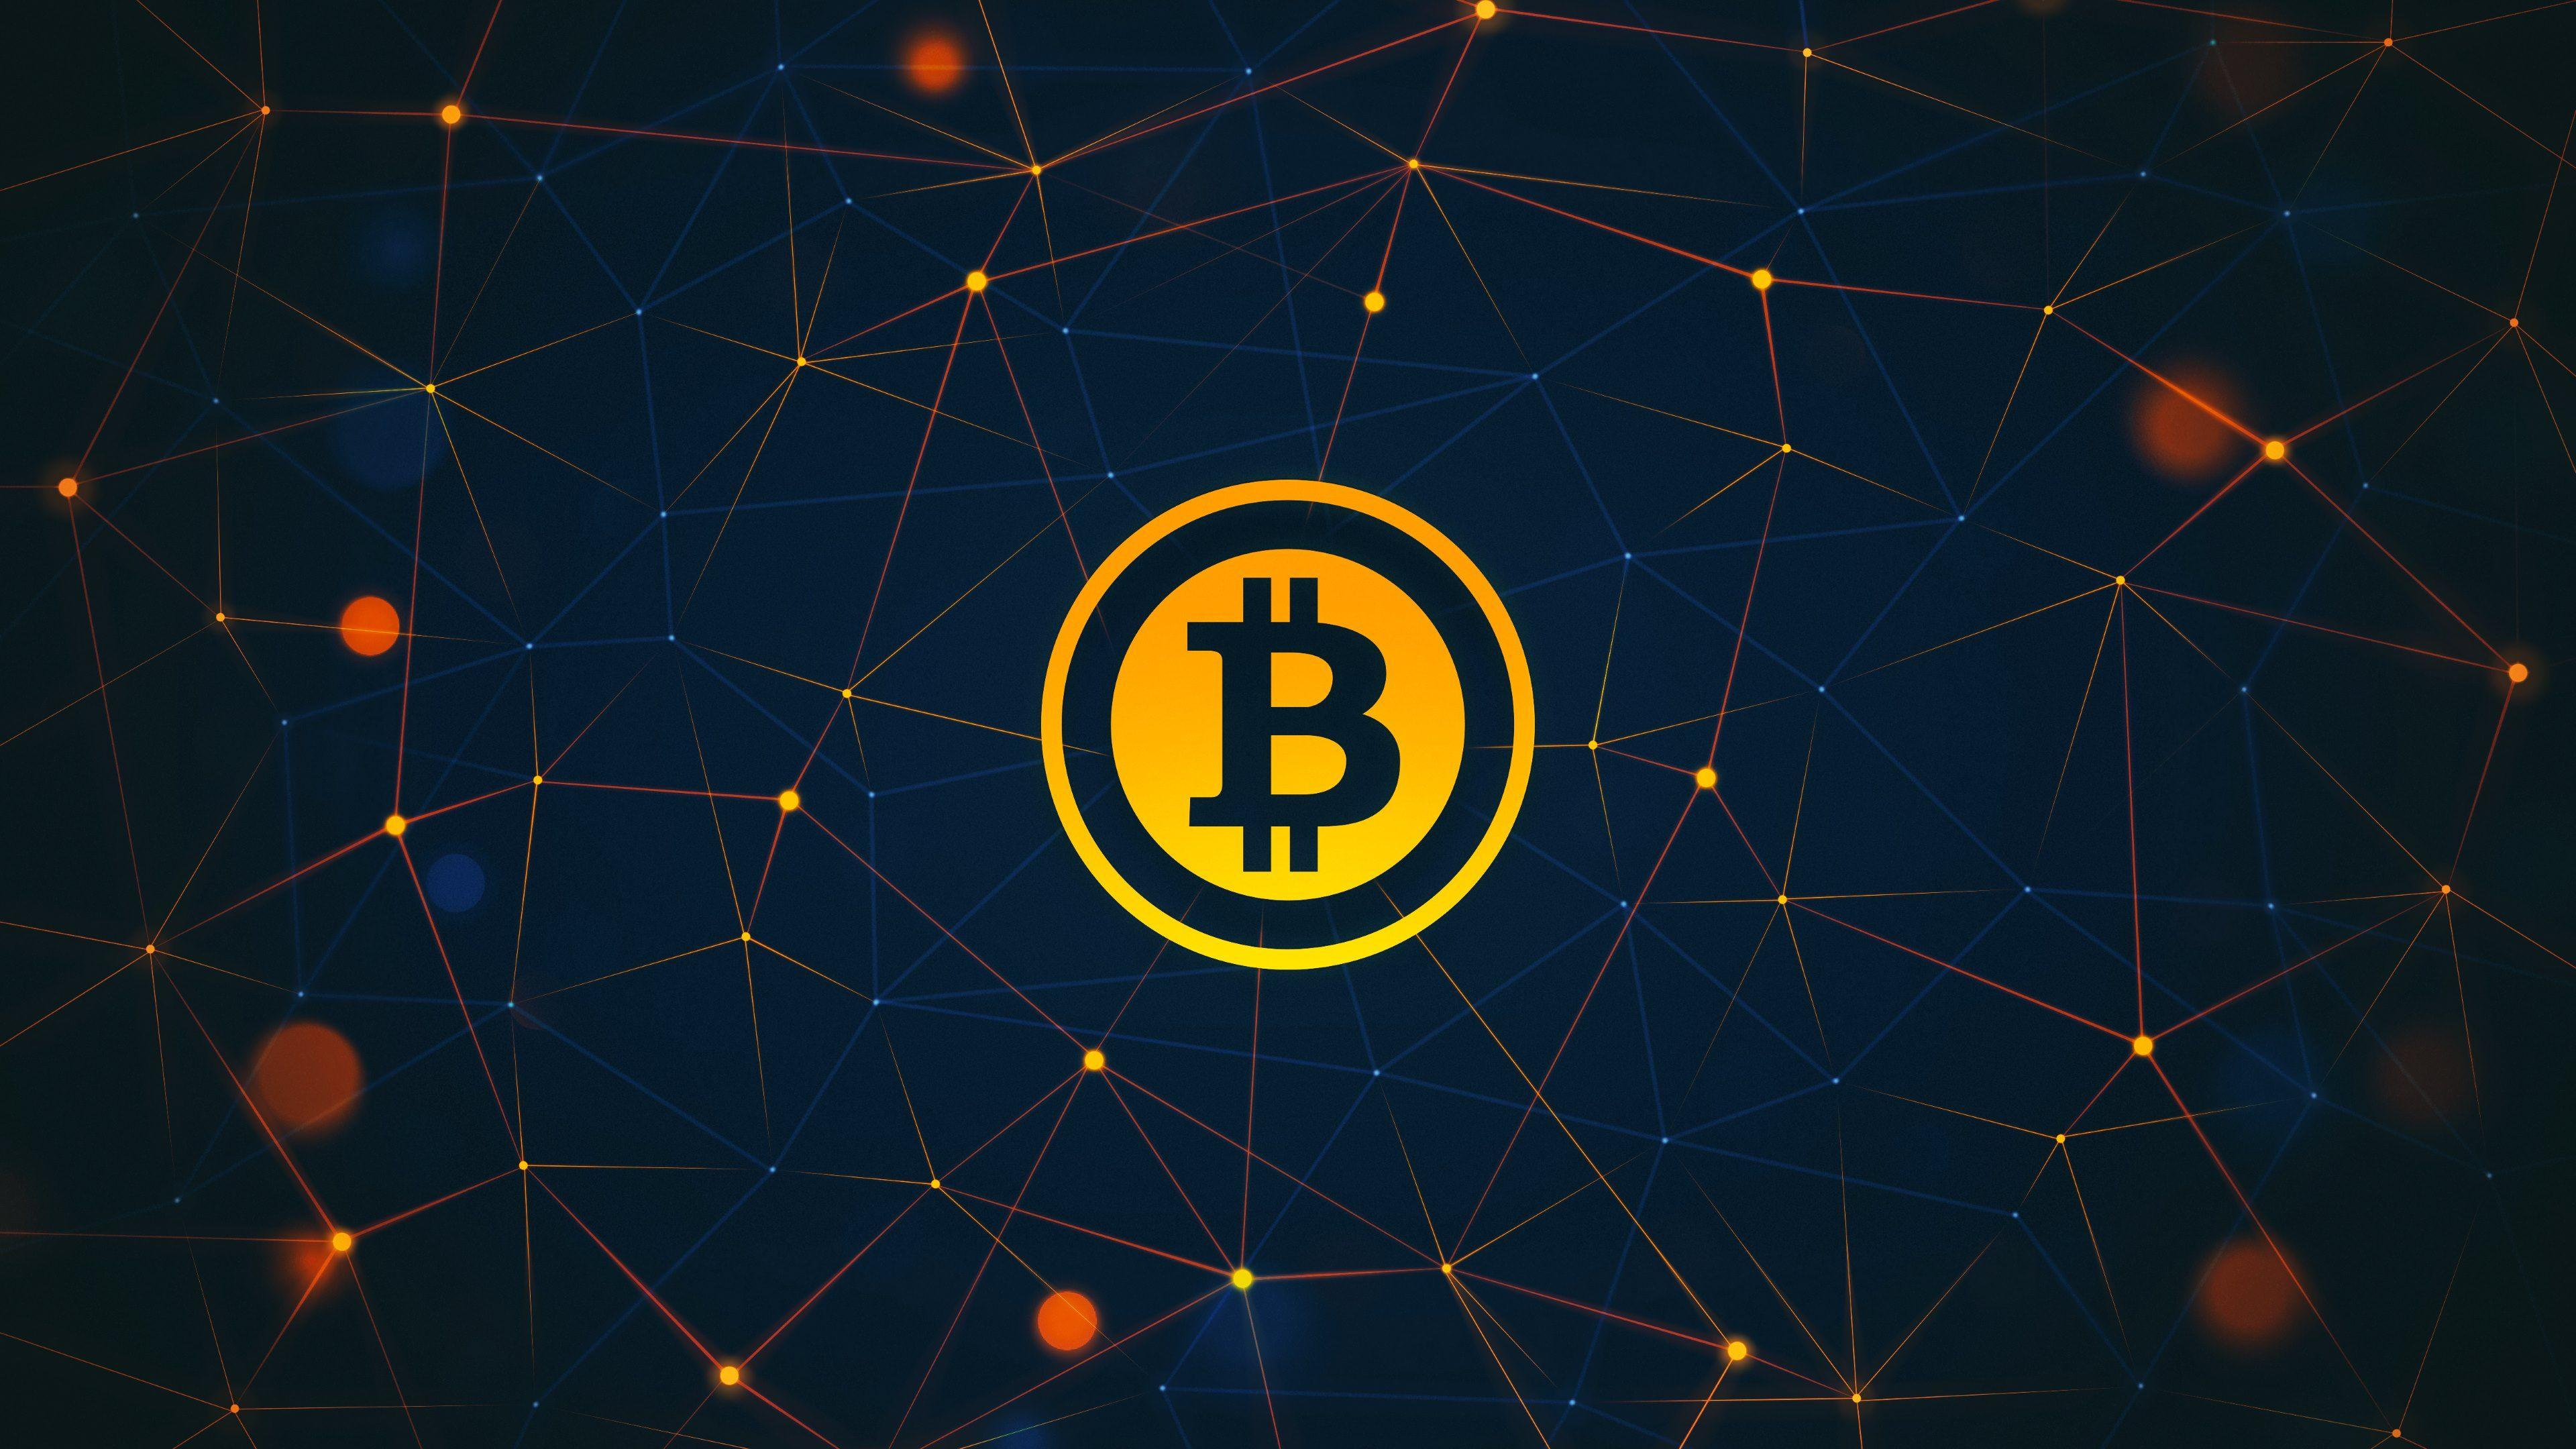 4k Bitcoin Wallpapers Top Free 4k Bitcoin Backgrounds Wallpaperaccess